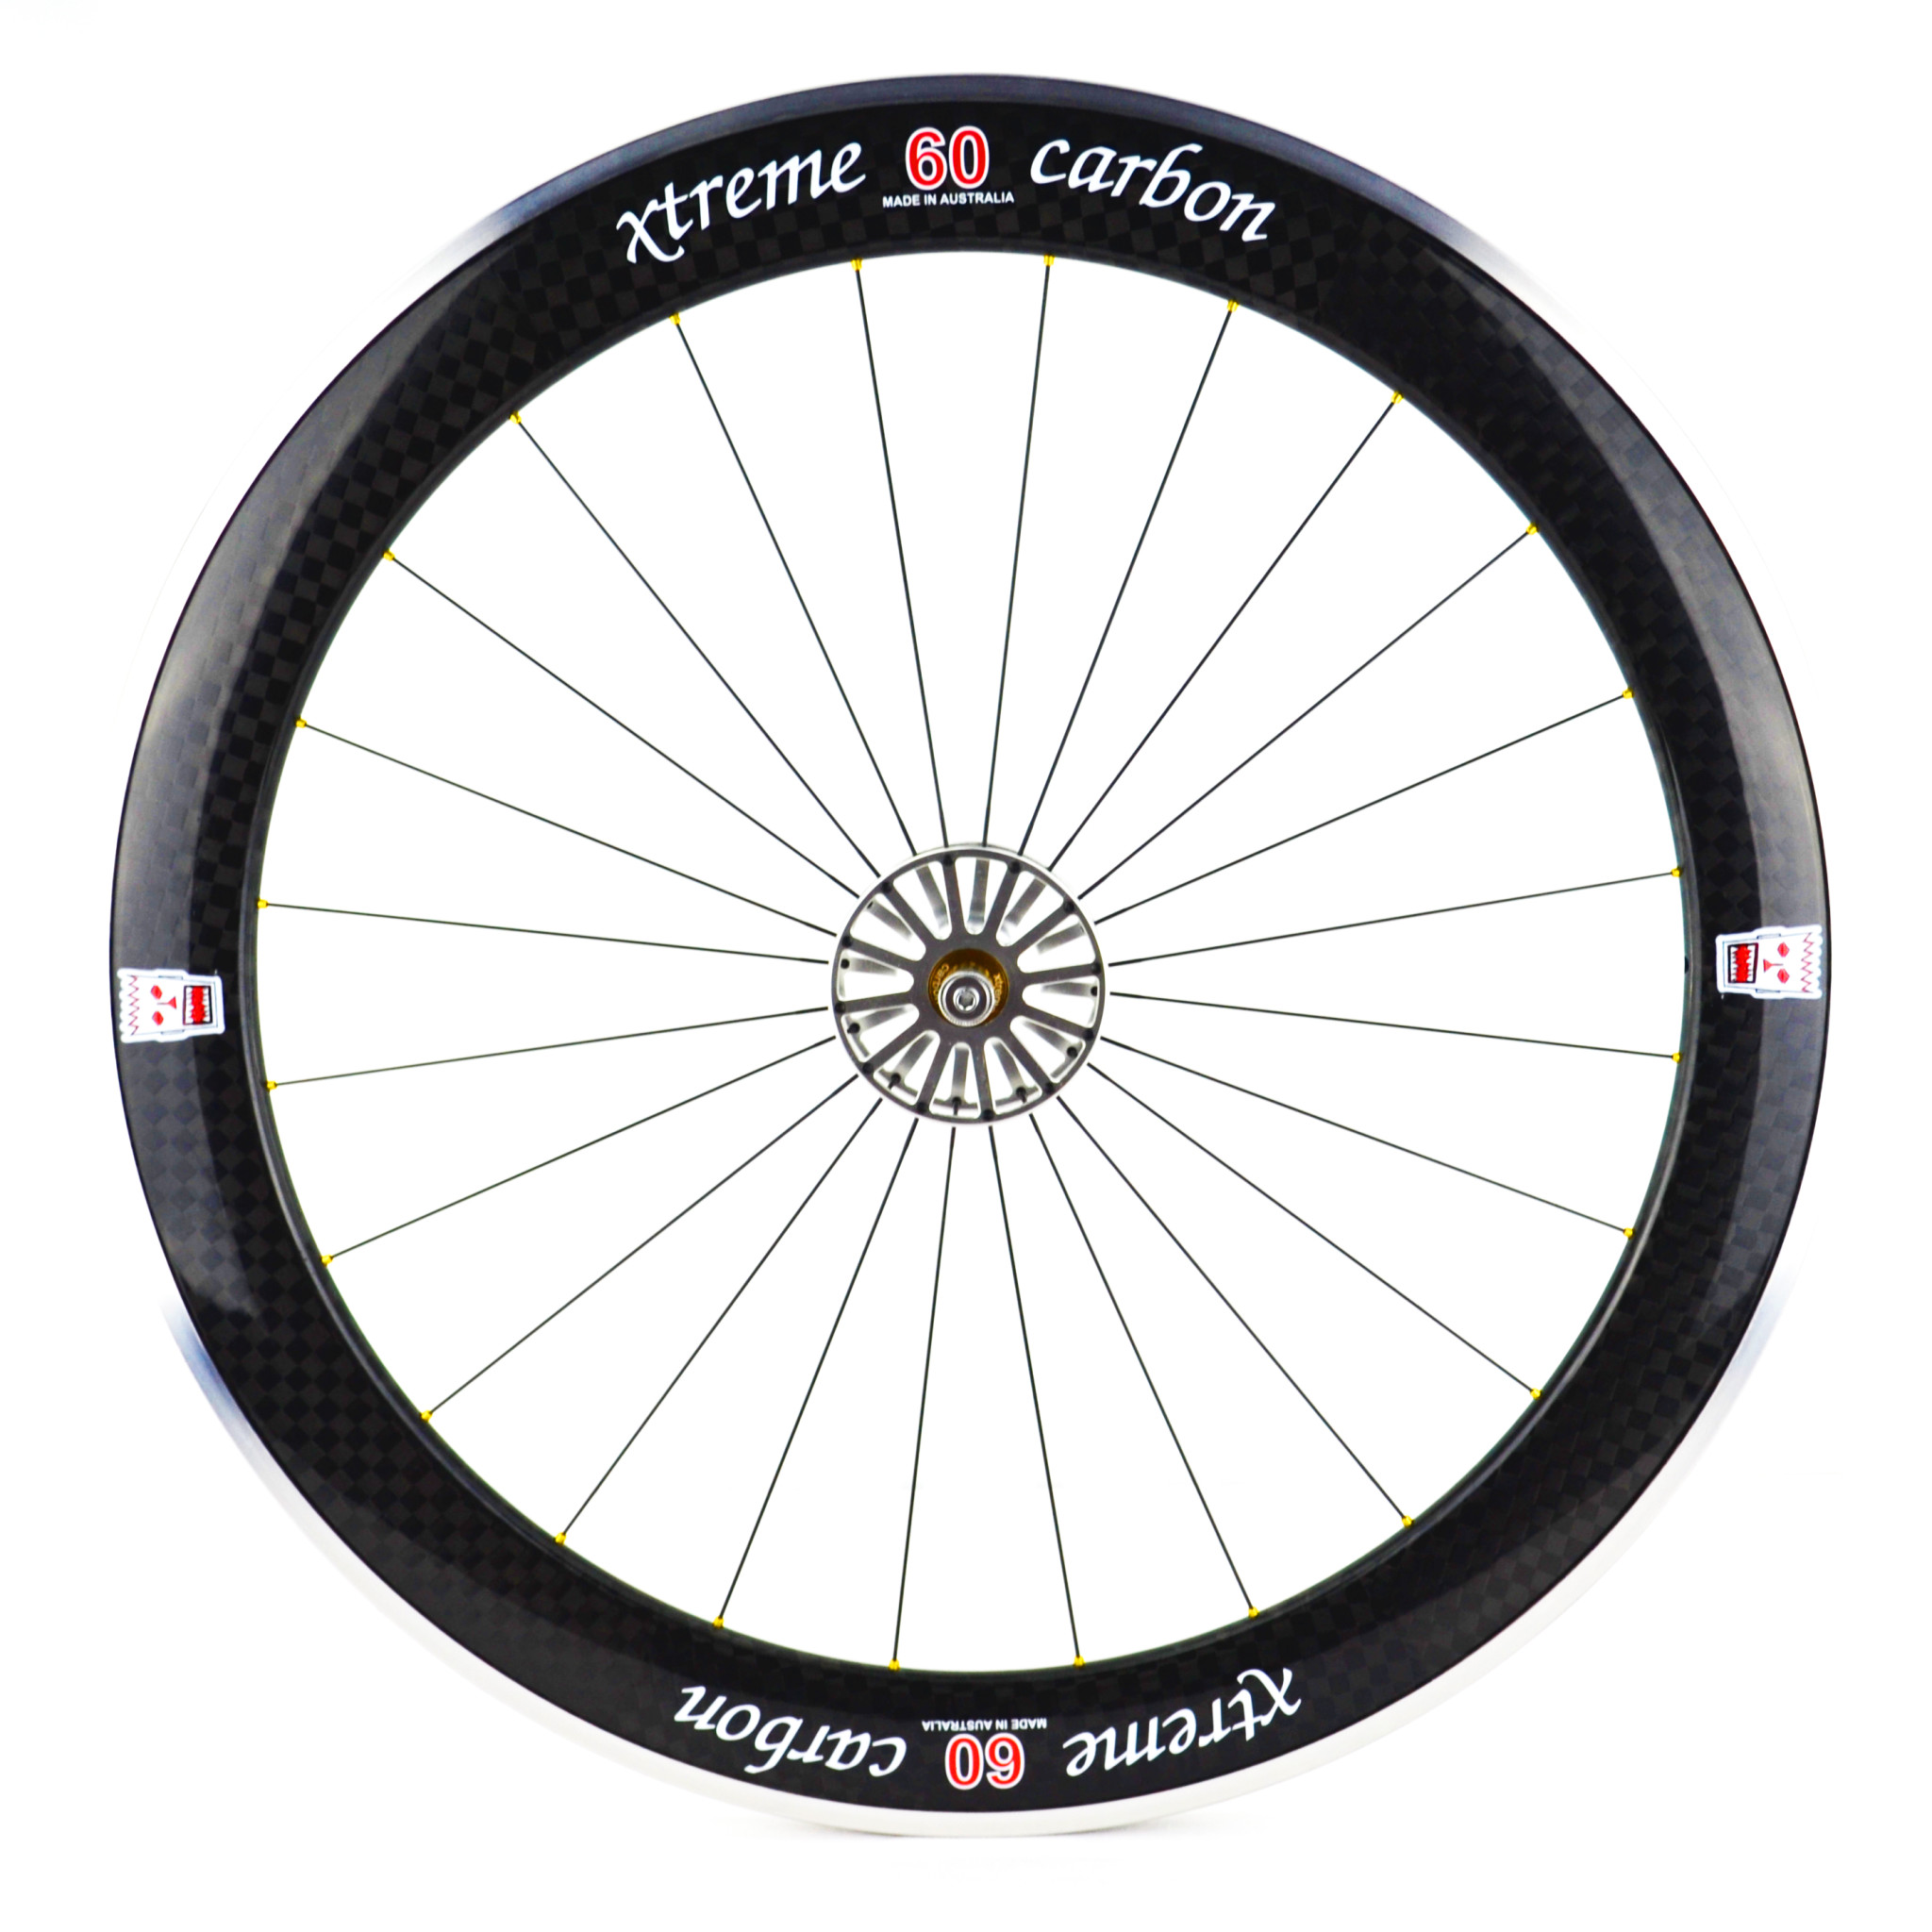 60 enticer grade carbon race wheel